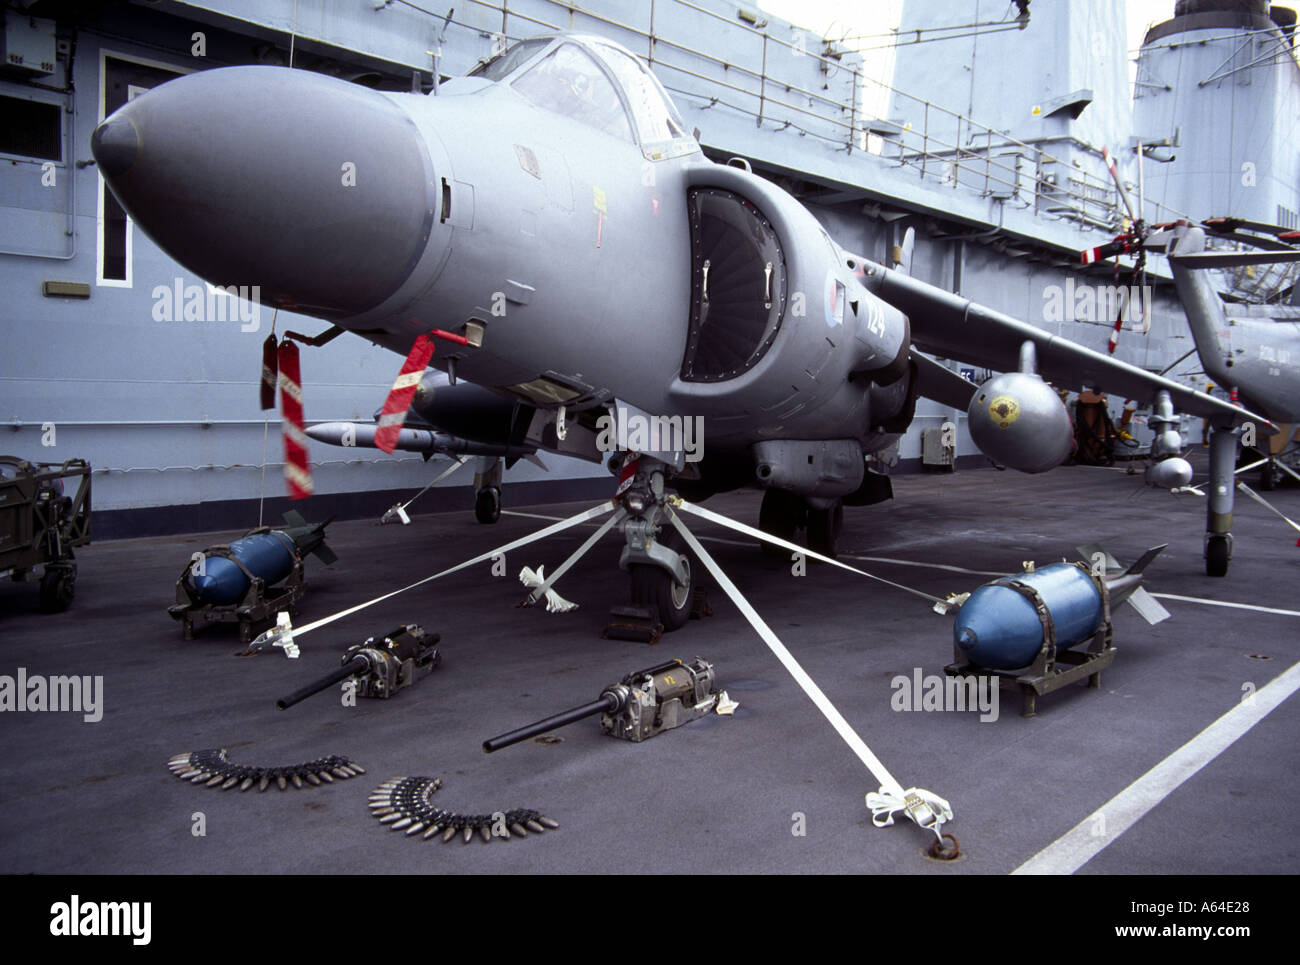 HMS Illustrious flight deck with Sea Harrier and armaments display - Stock Image